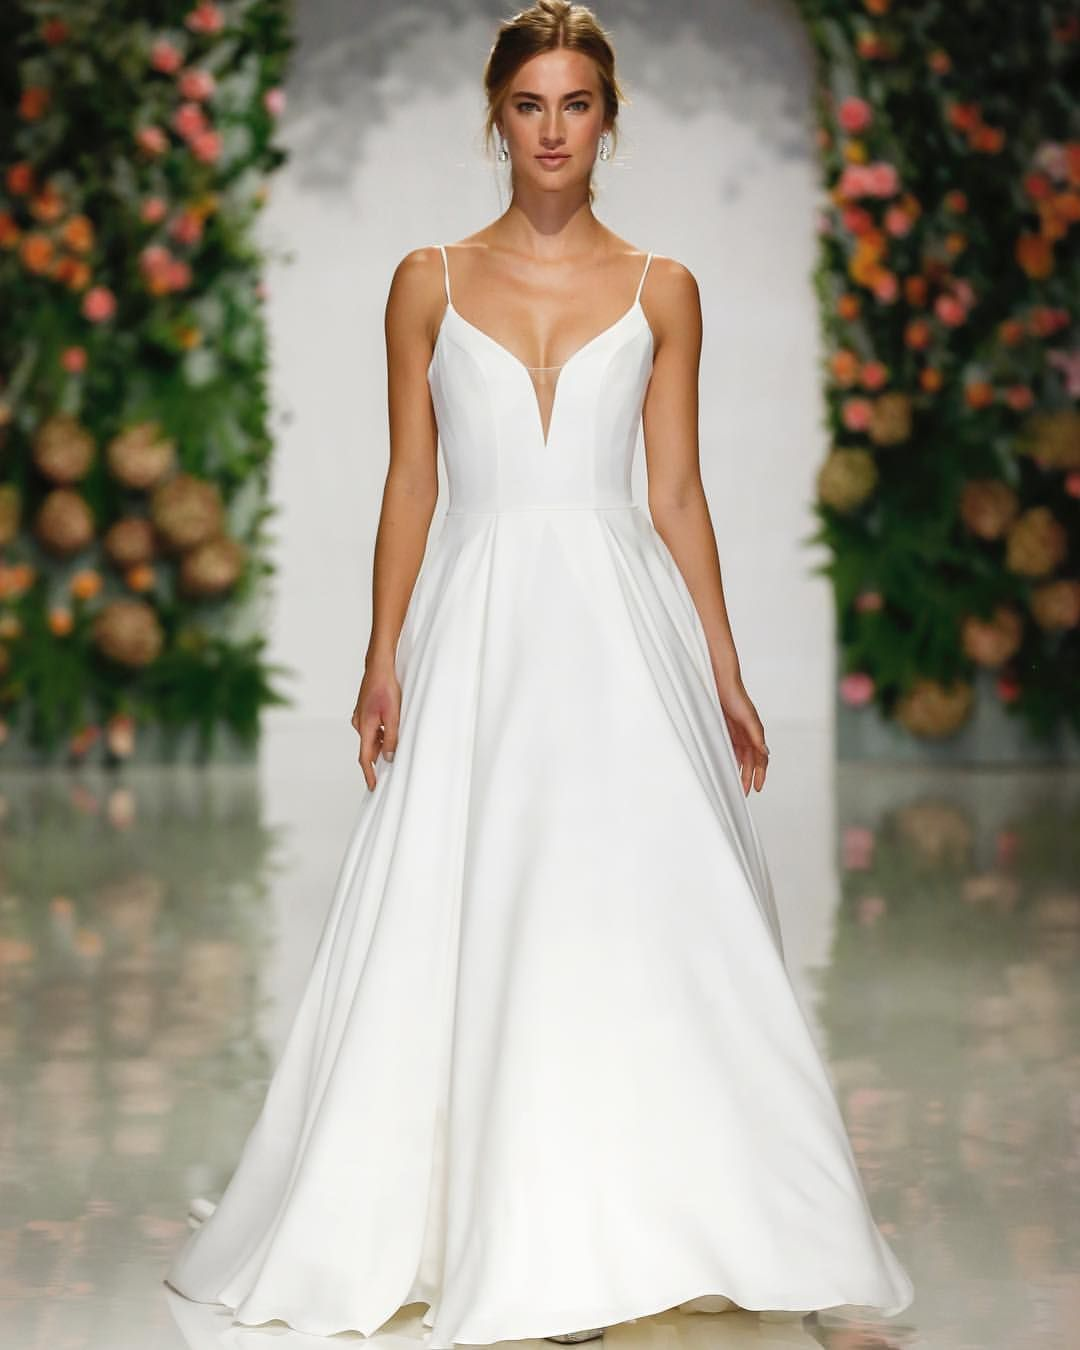 Mori Lee 2019 Wedding Dresses: Simple, Sleek, And Oh-so #chic! 😍 Pacifica, Style 5706